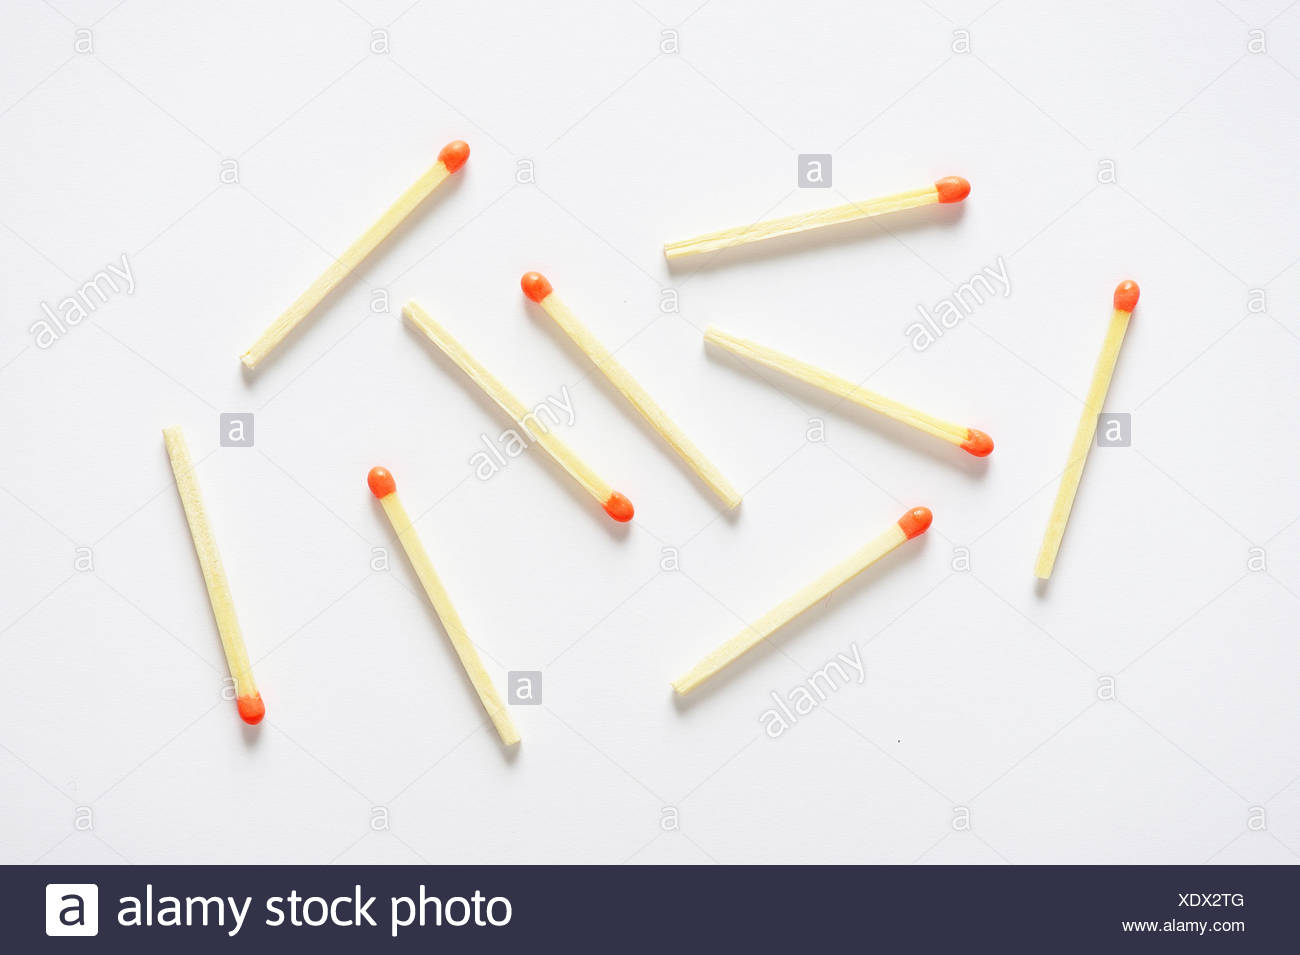 Scattered matches - Stock Image